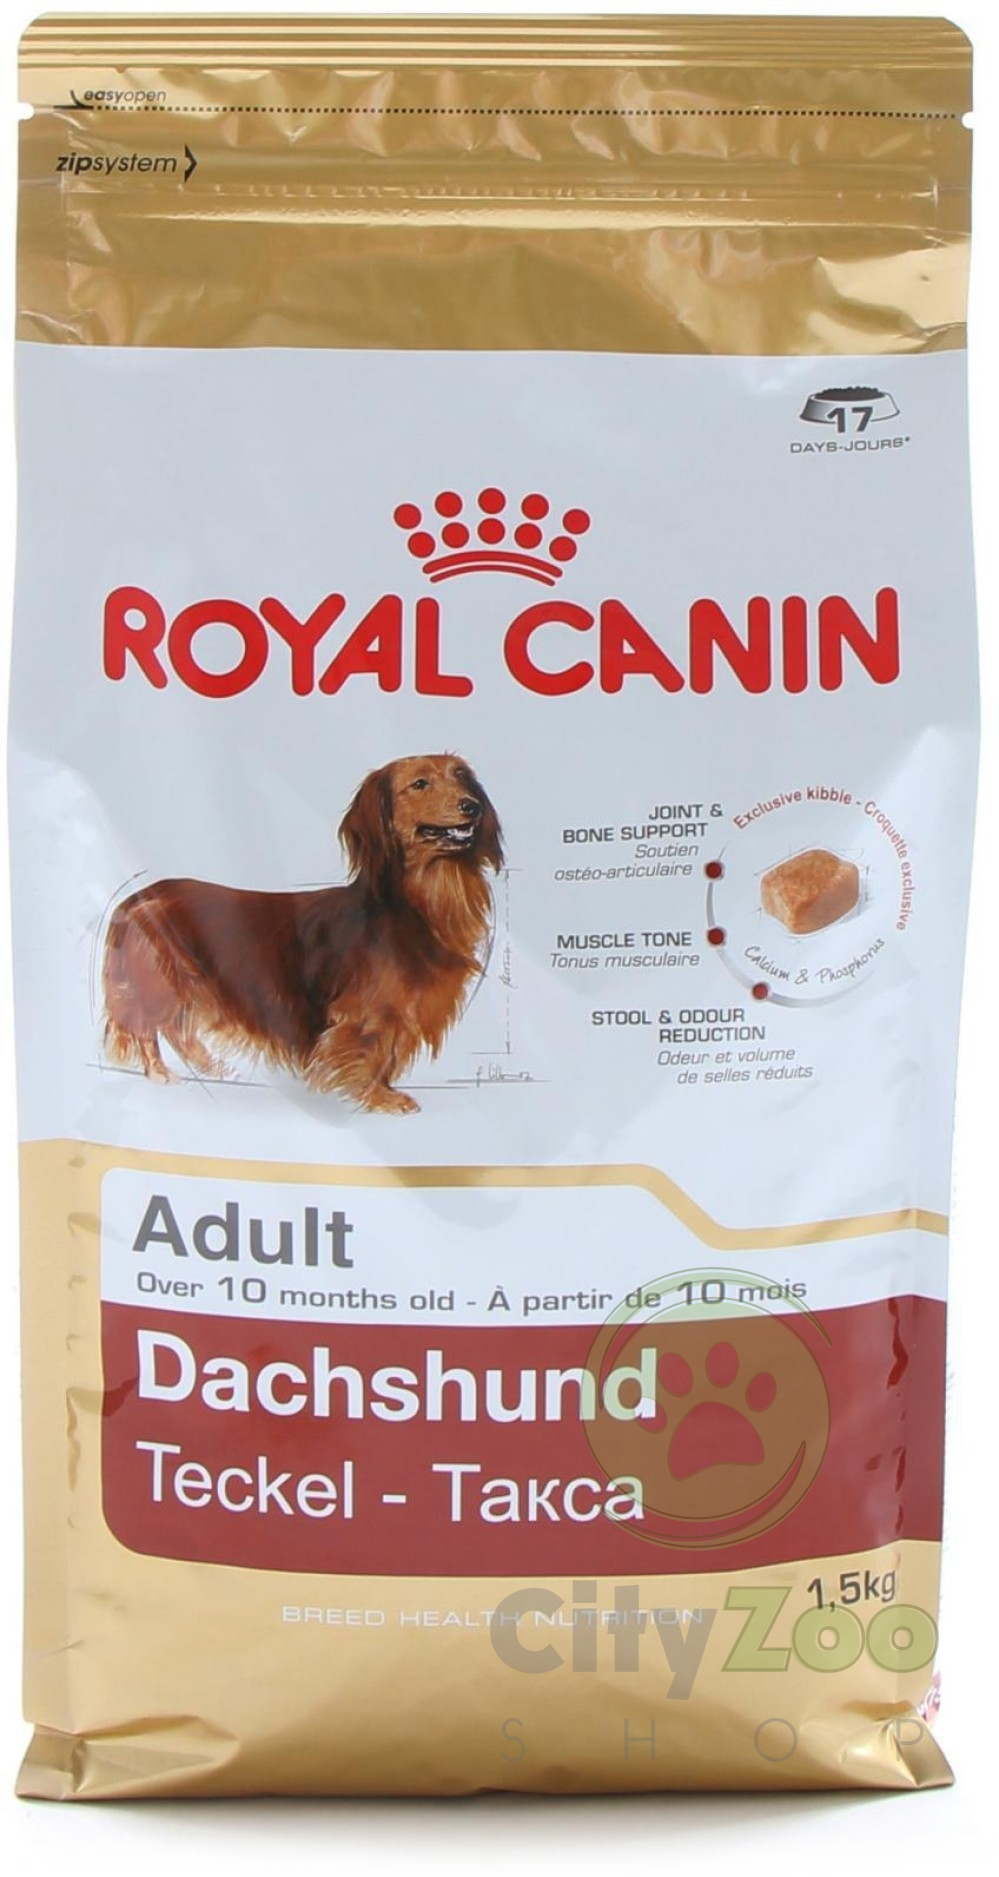 zoo/Royal_Canin_Dachshund_Adult